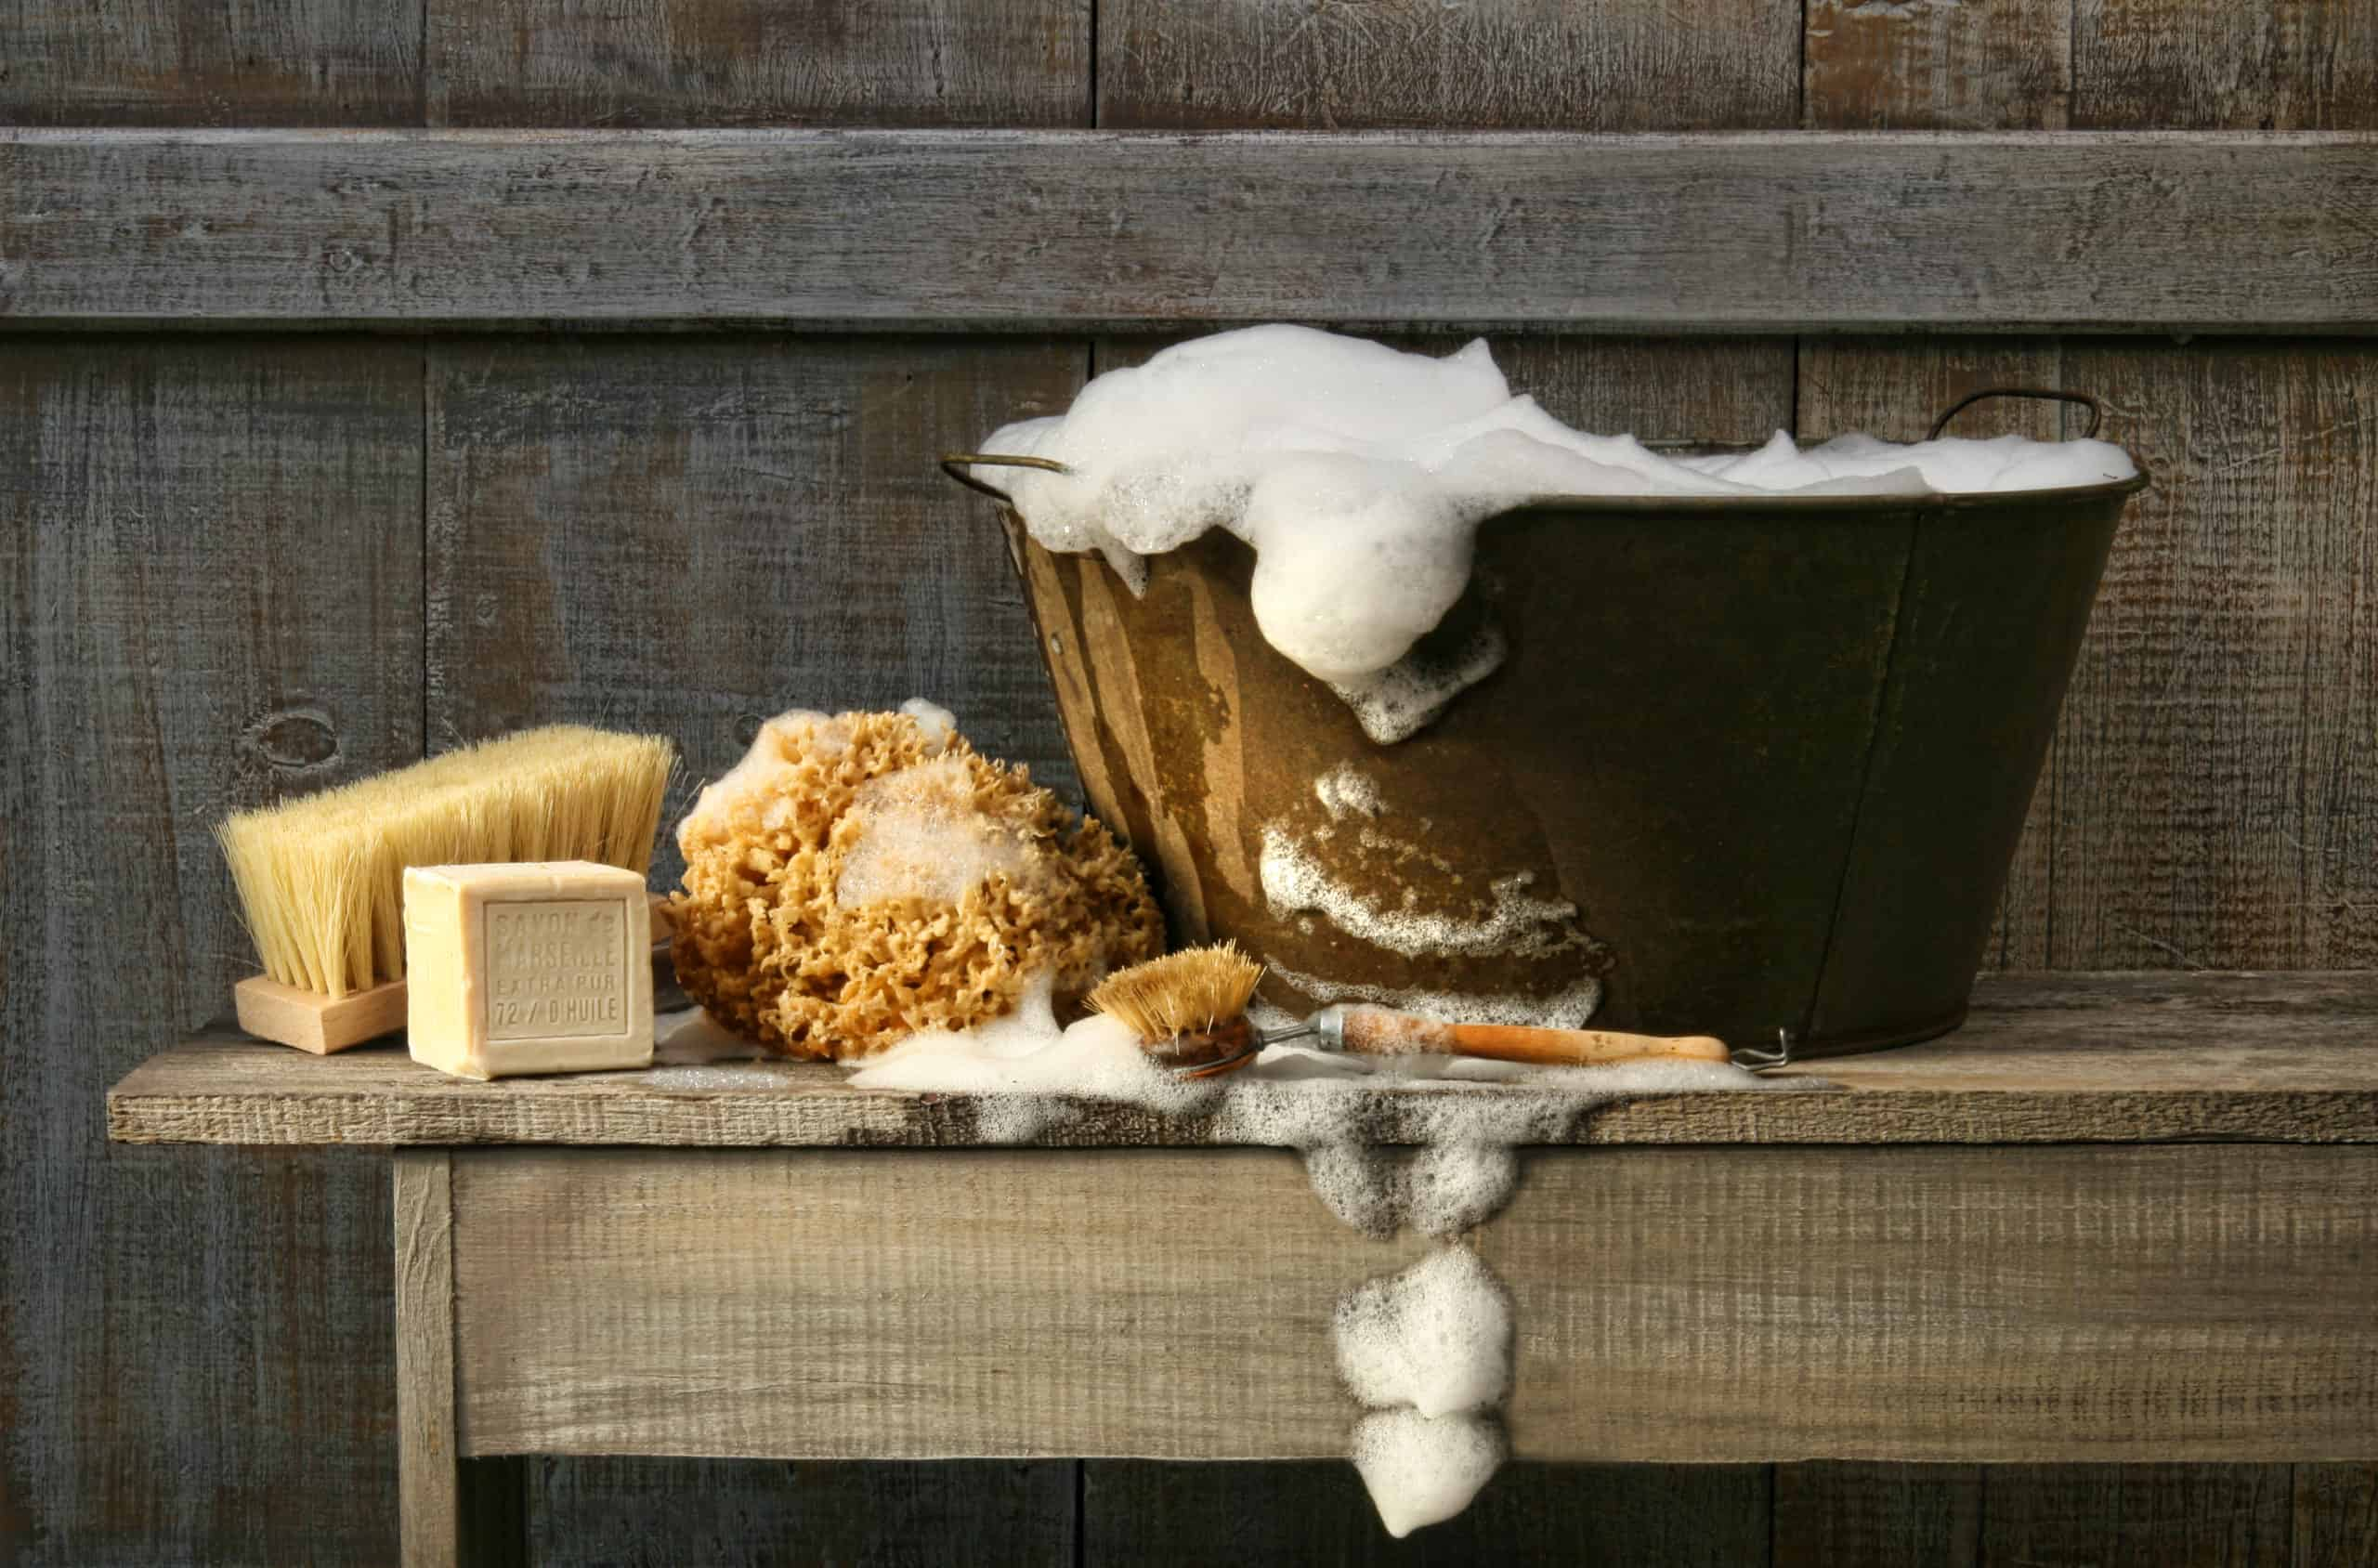 Old wash tub with soap on rustic bench